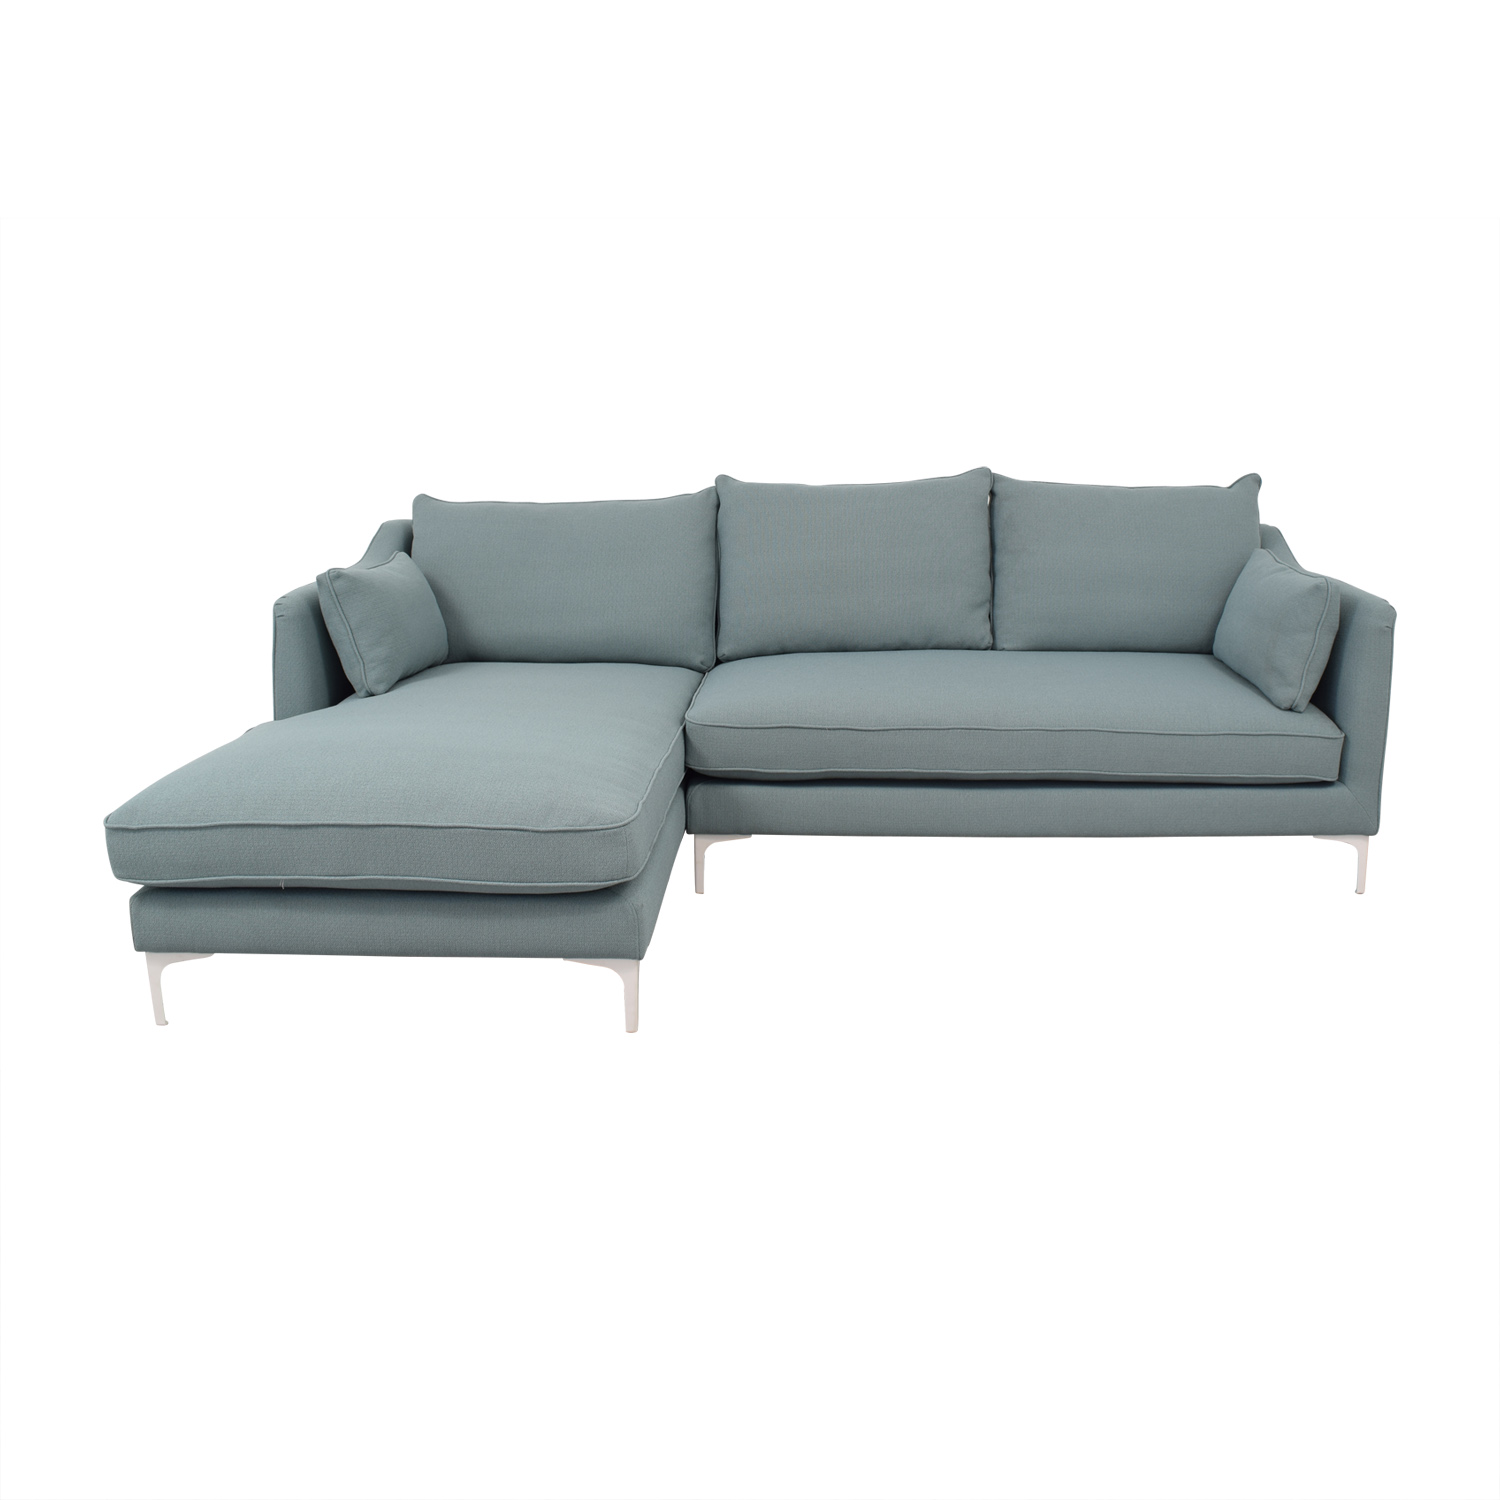 Interior Define Mint Green Caitlin Left Arm Chaise Sectional Sofa Sectionals